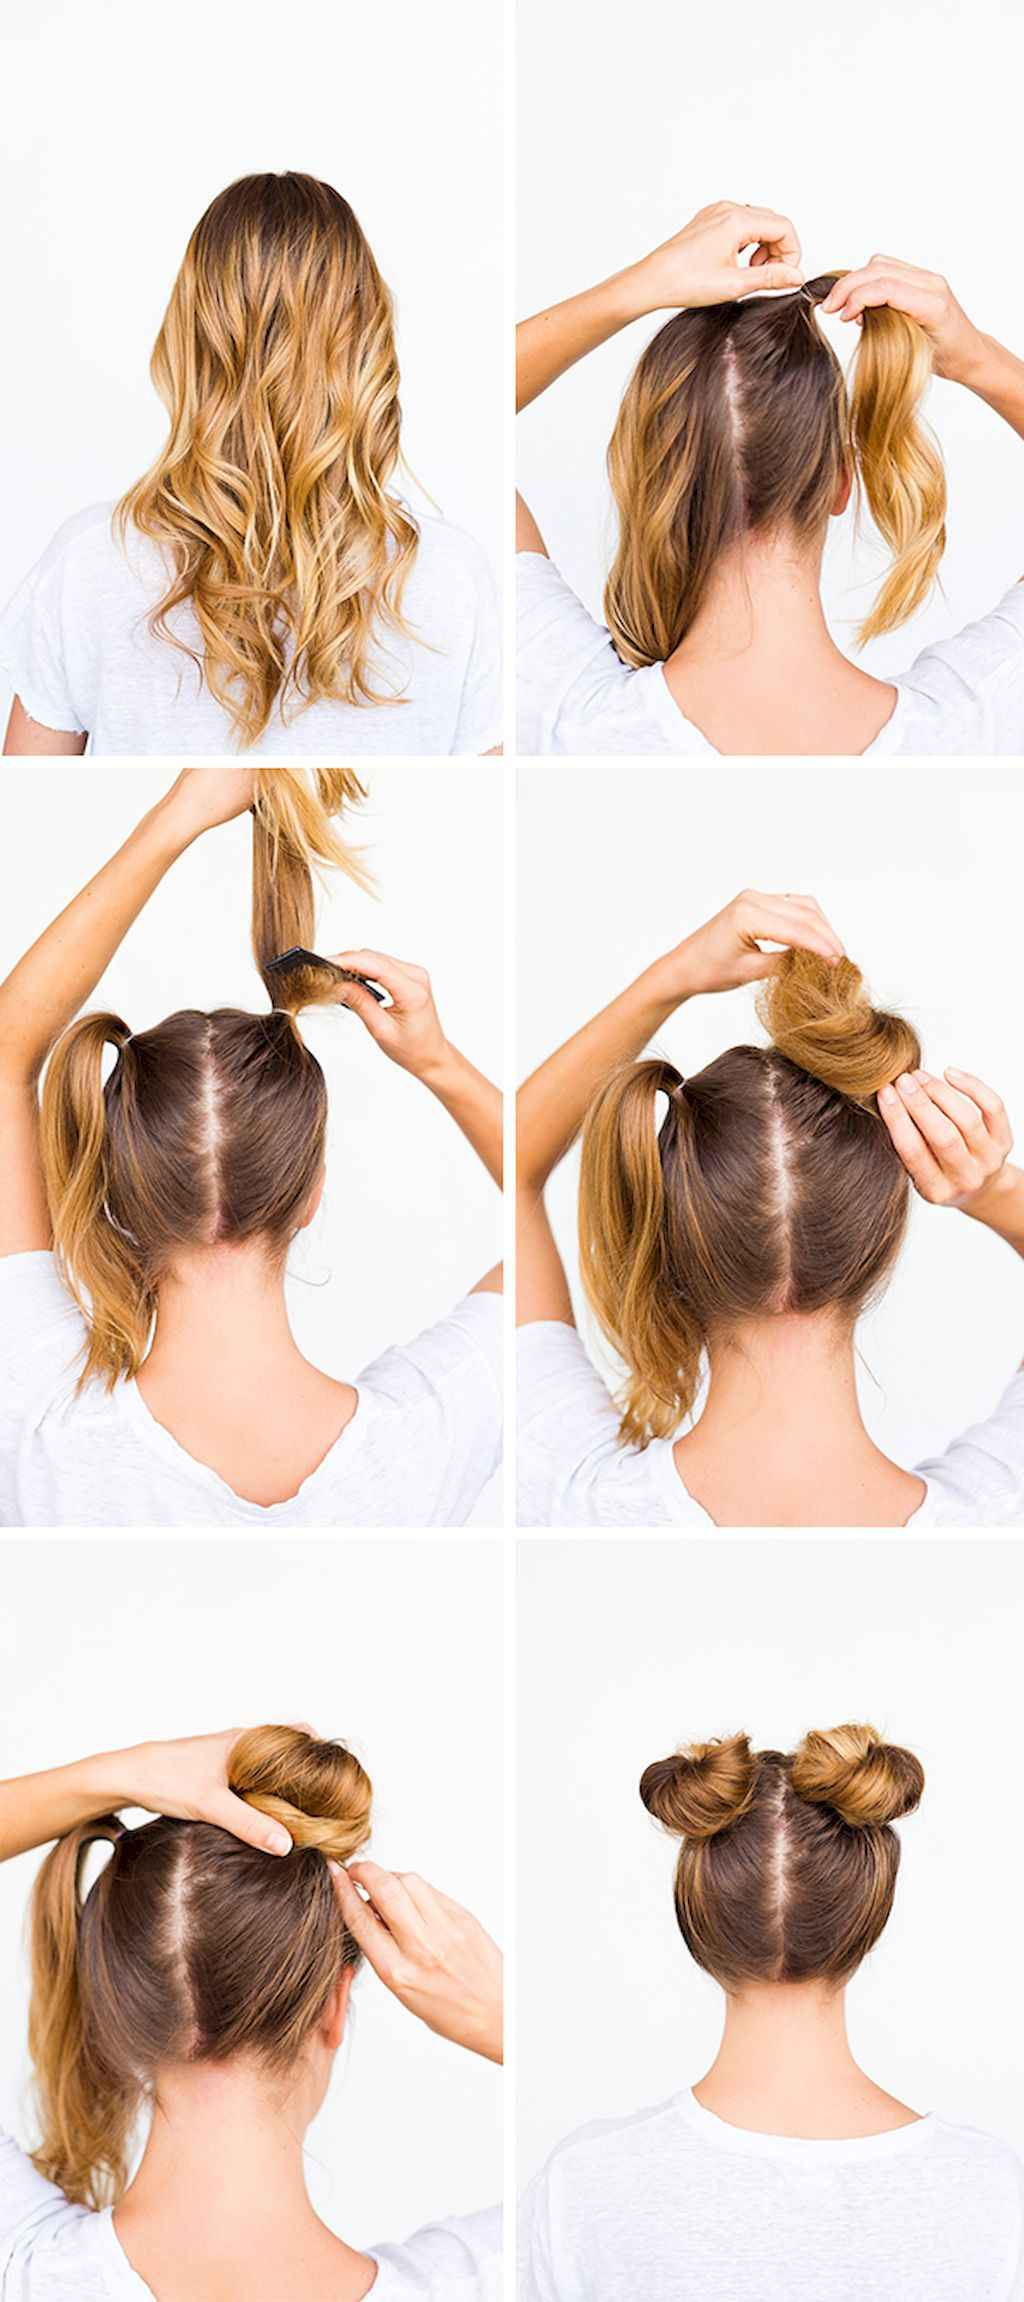 37 Easy Summer Hairstyle To Do Yourself